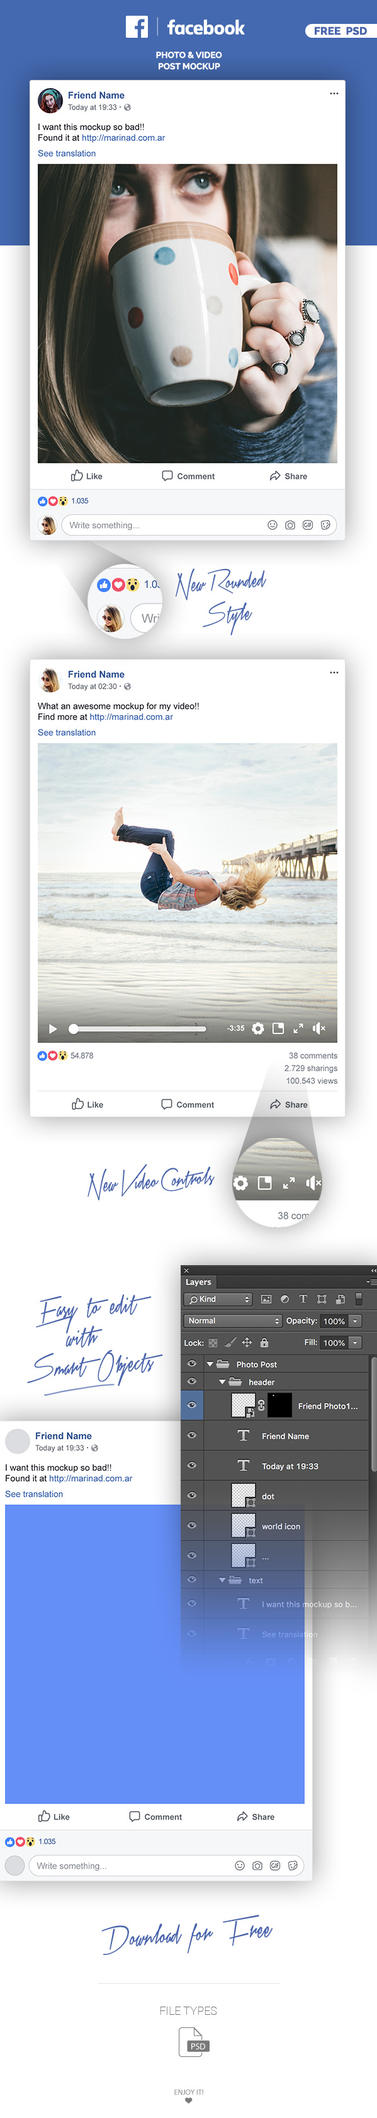 FREE Facebook Post Mockup - 2018 by MarinaD